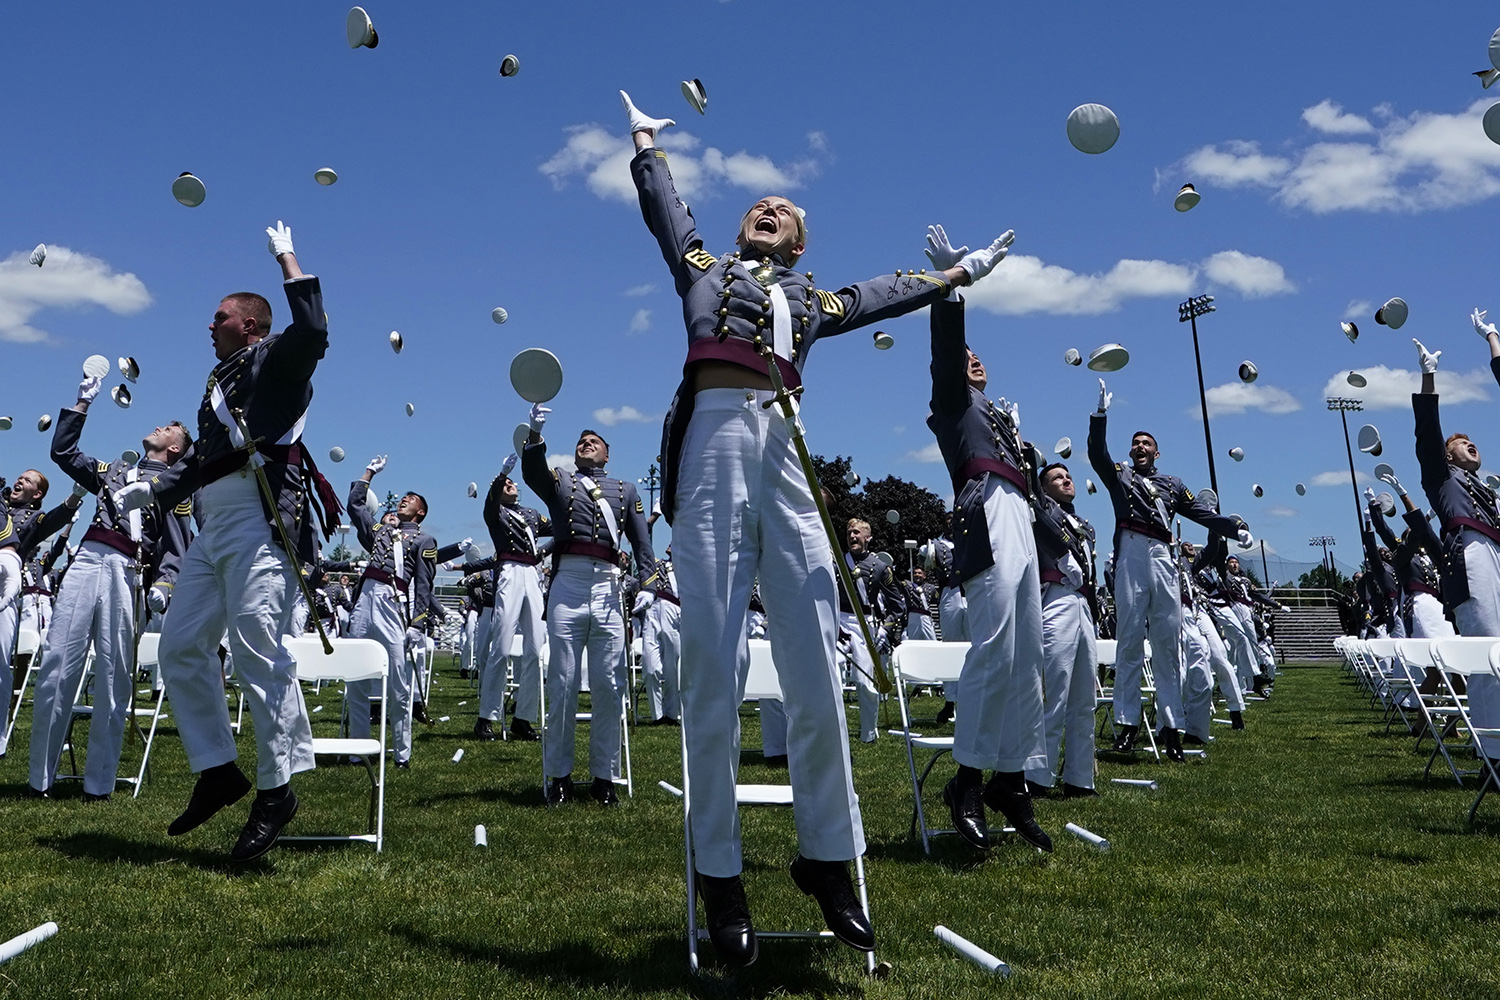 U.S. Military Academy cadets toss their hats at the end of a graduation ceremony in West Point, New York, on June 13. TIMOTHY A. CLARY/AFP via Getty Images